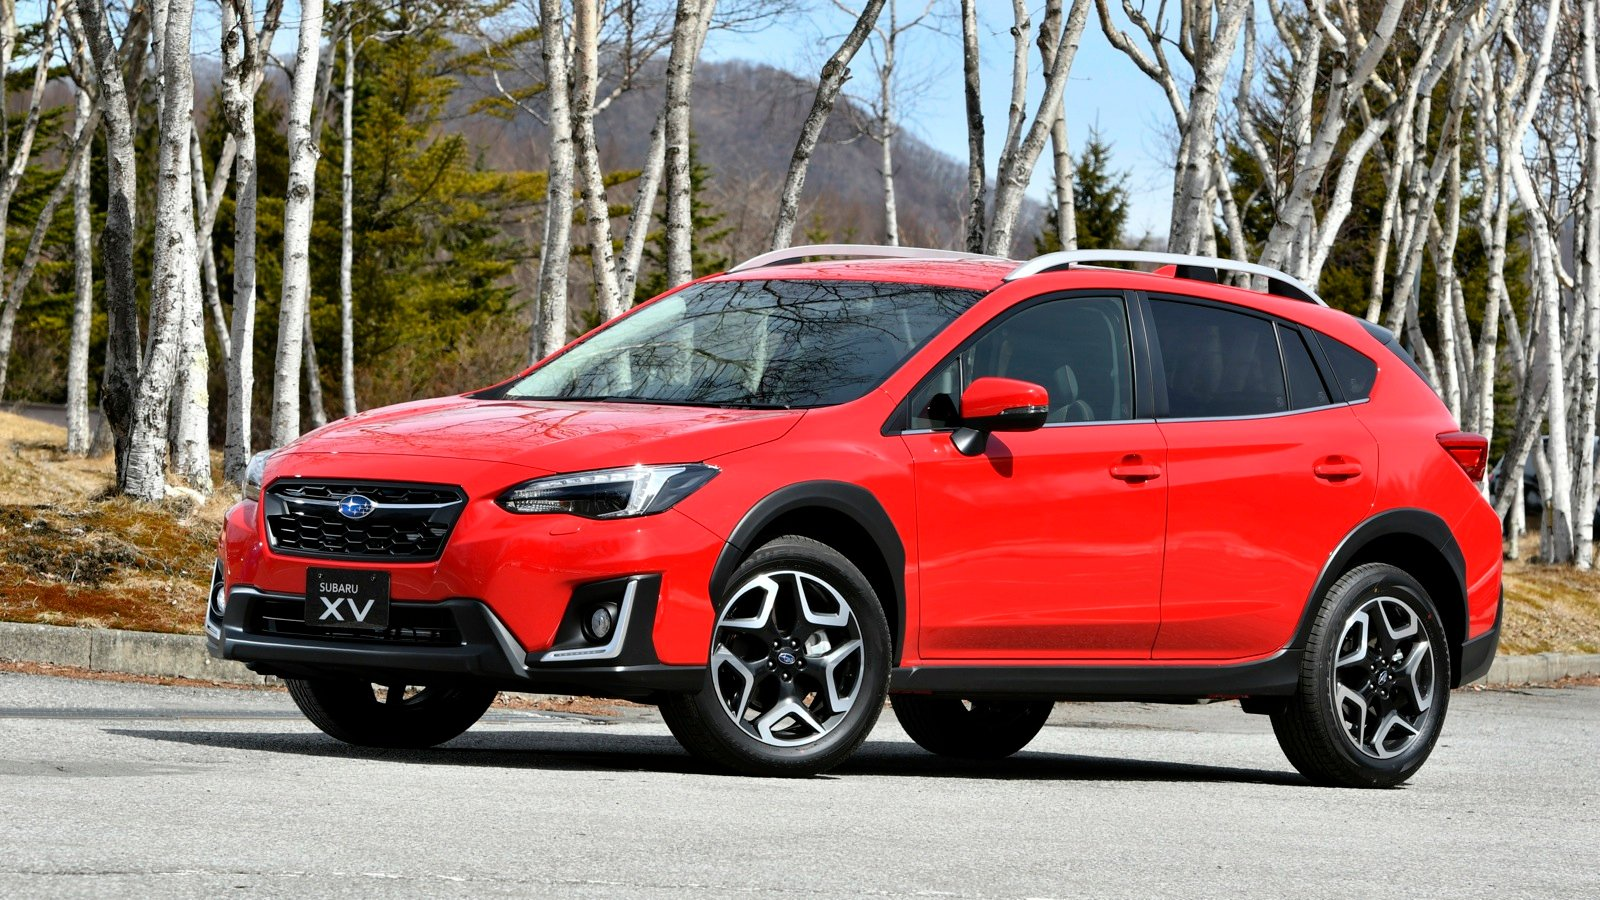 2017 Subaru XV review - photos | CarAdvice